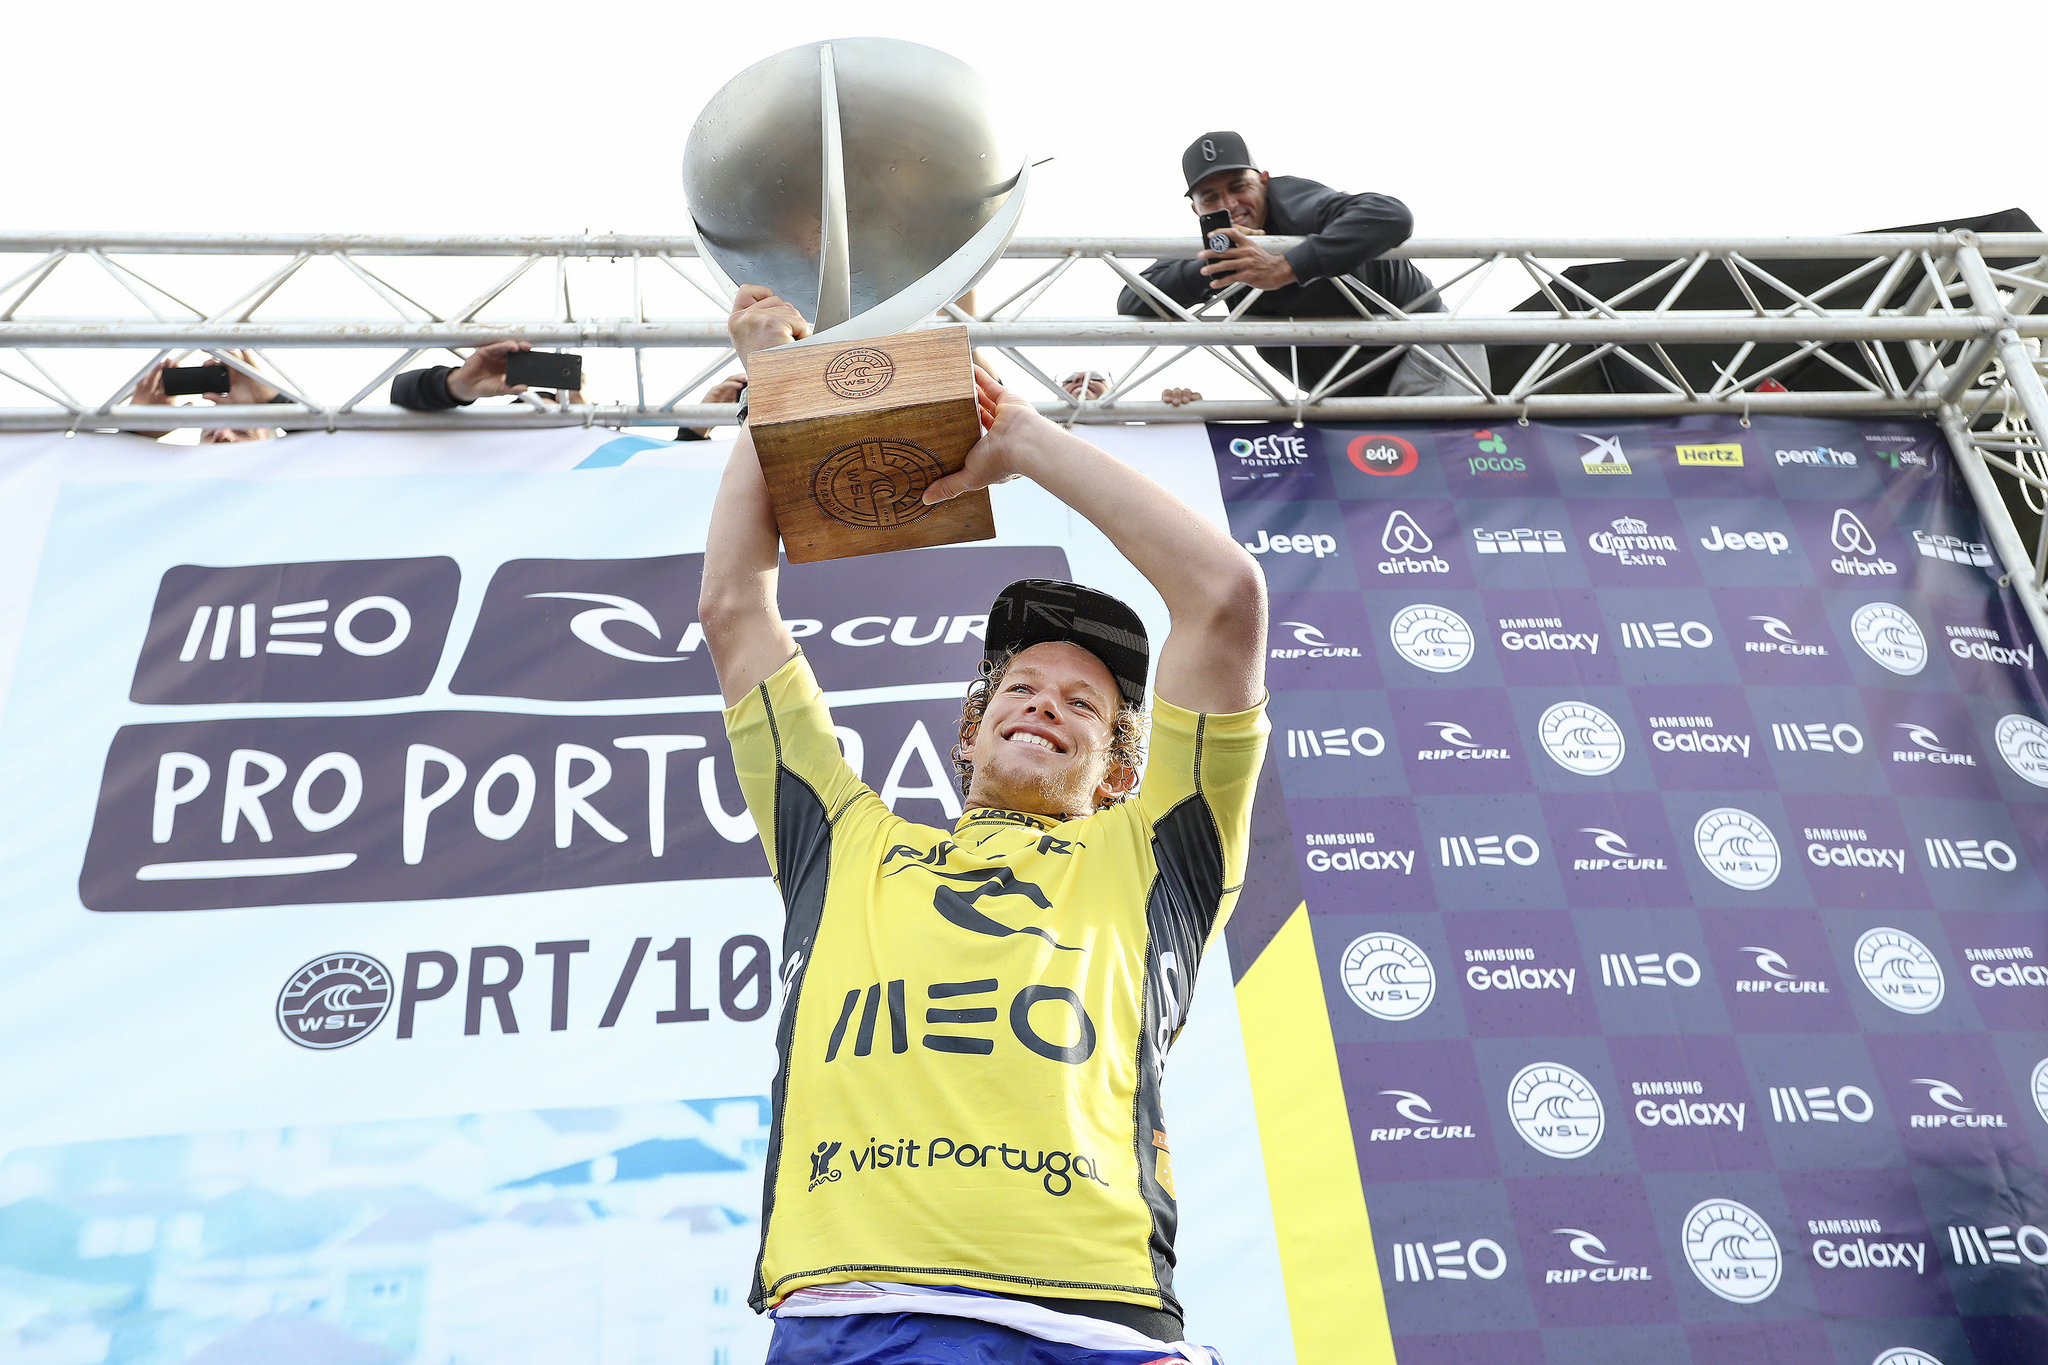 John John Florence is the 2016 World Champion and the Rip Curl Pro Portugal Winner. Photo: WSL